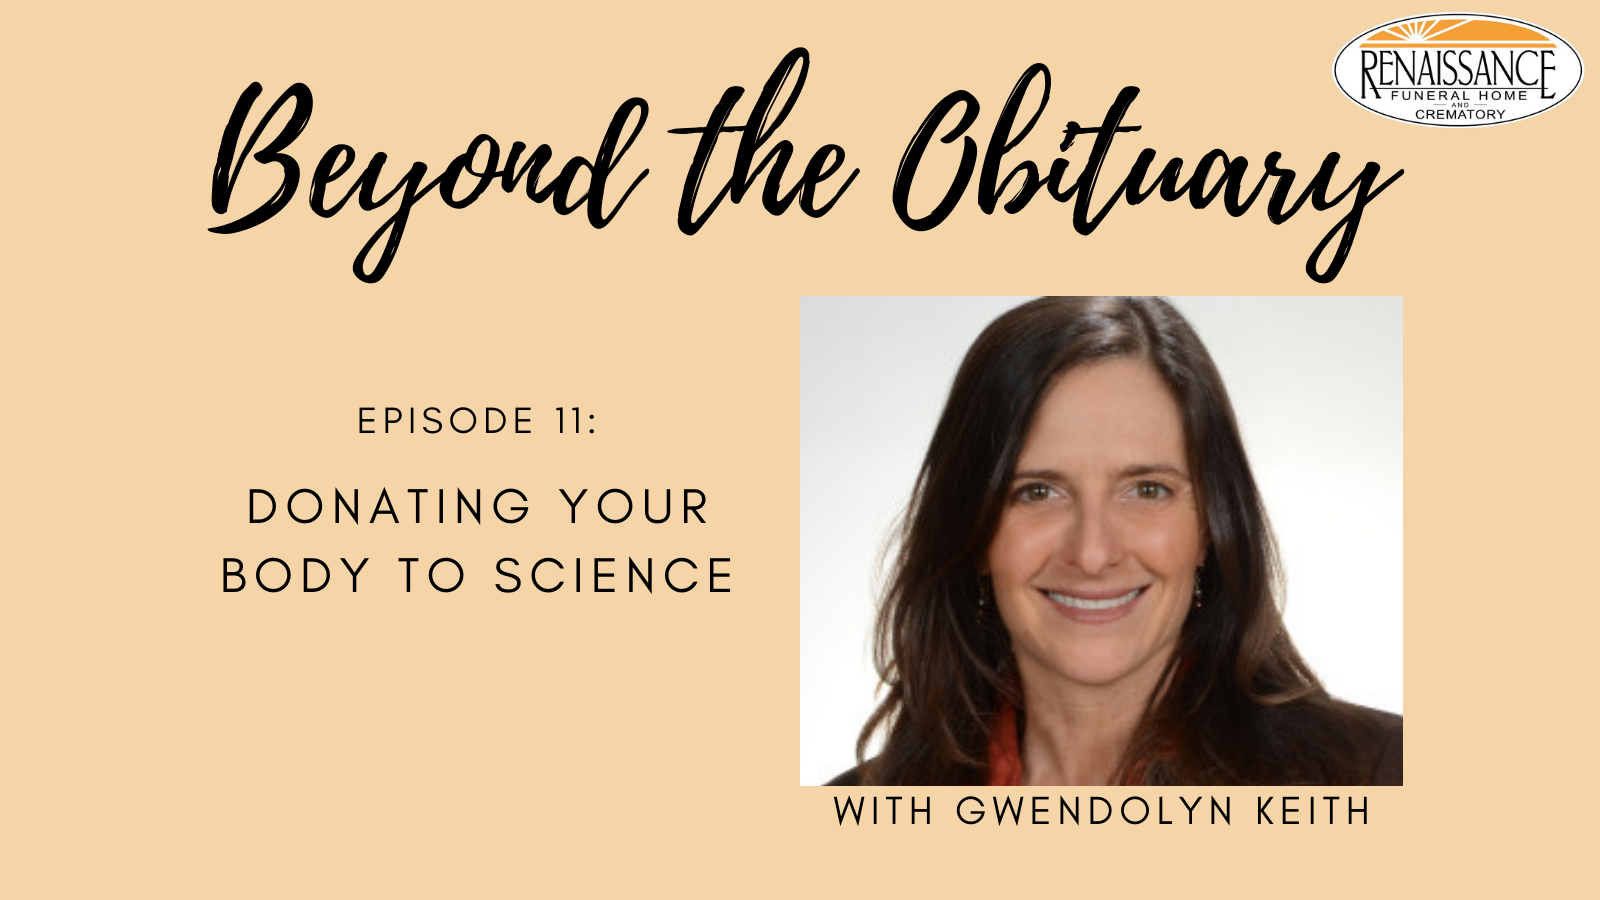 Donating Your Body to Science Duke School of Medicine Gwendolyn Keith Beyond the Obituary Podcast